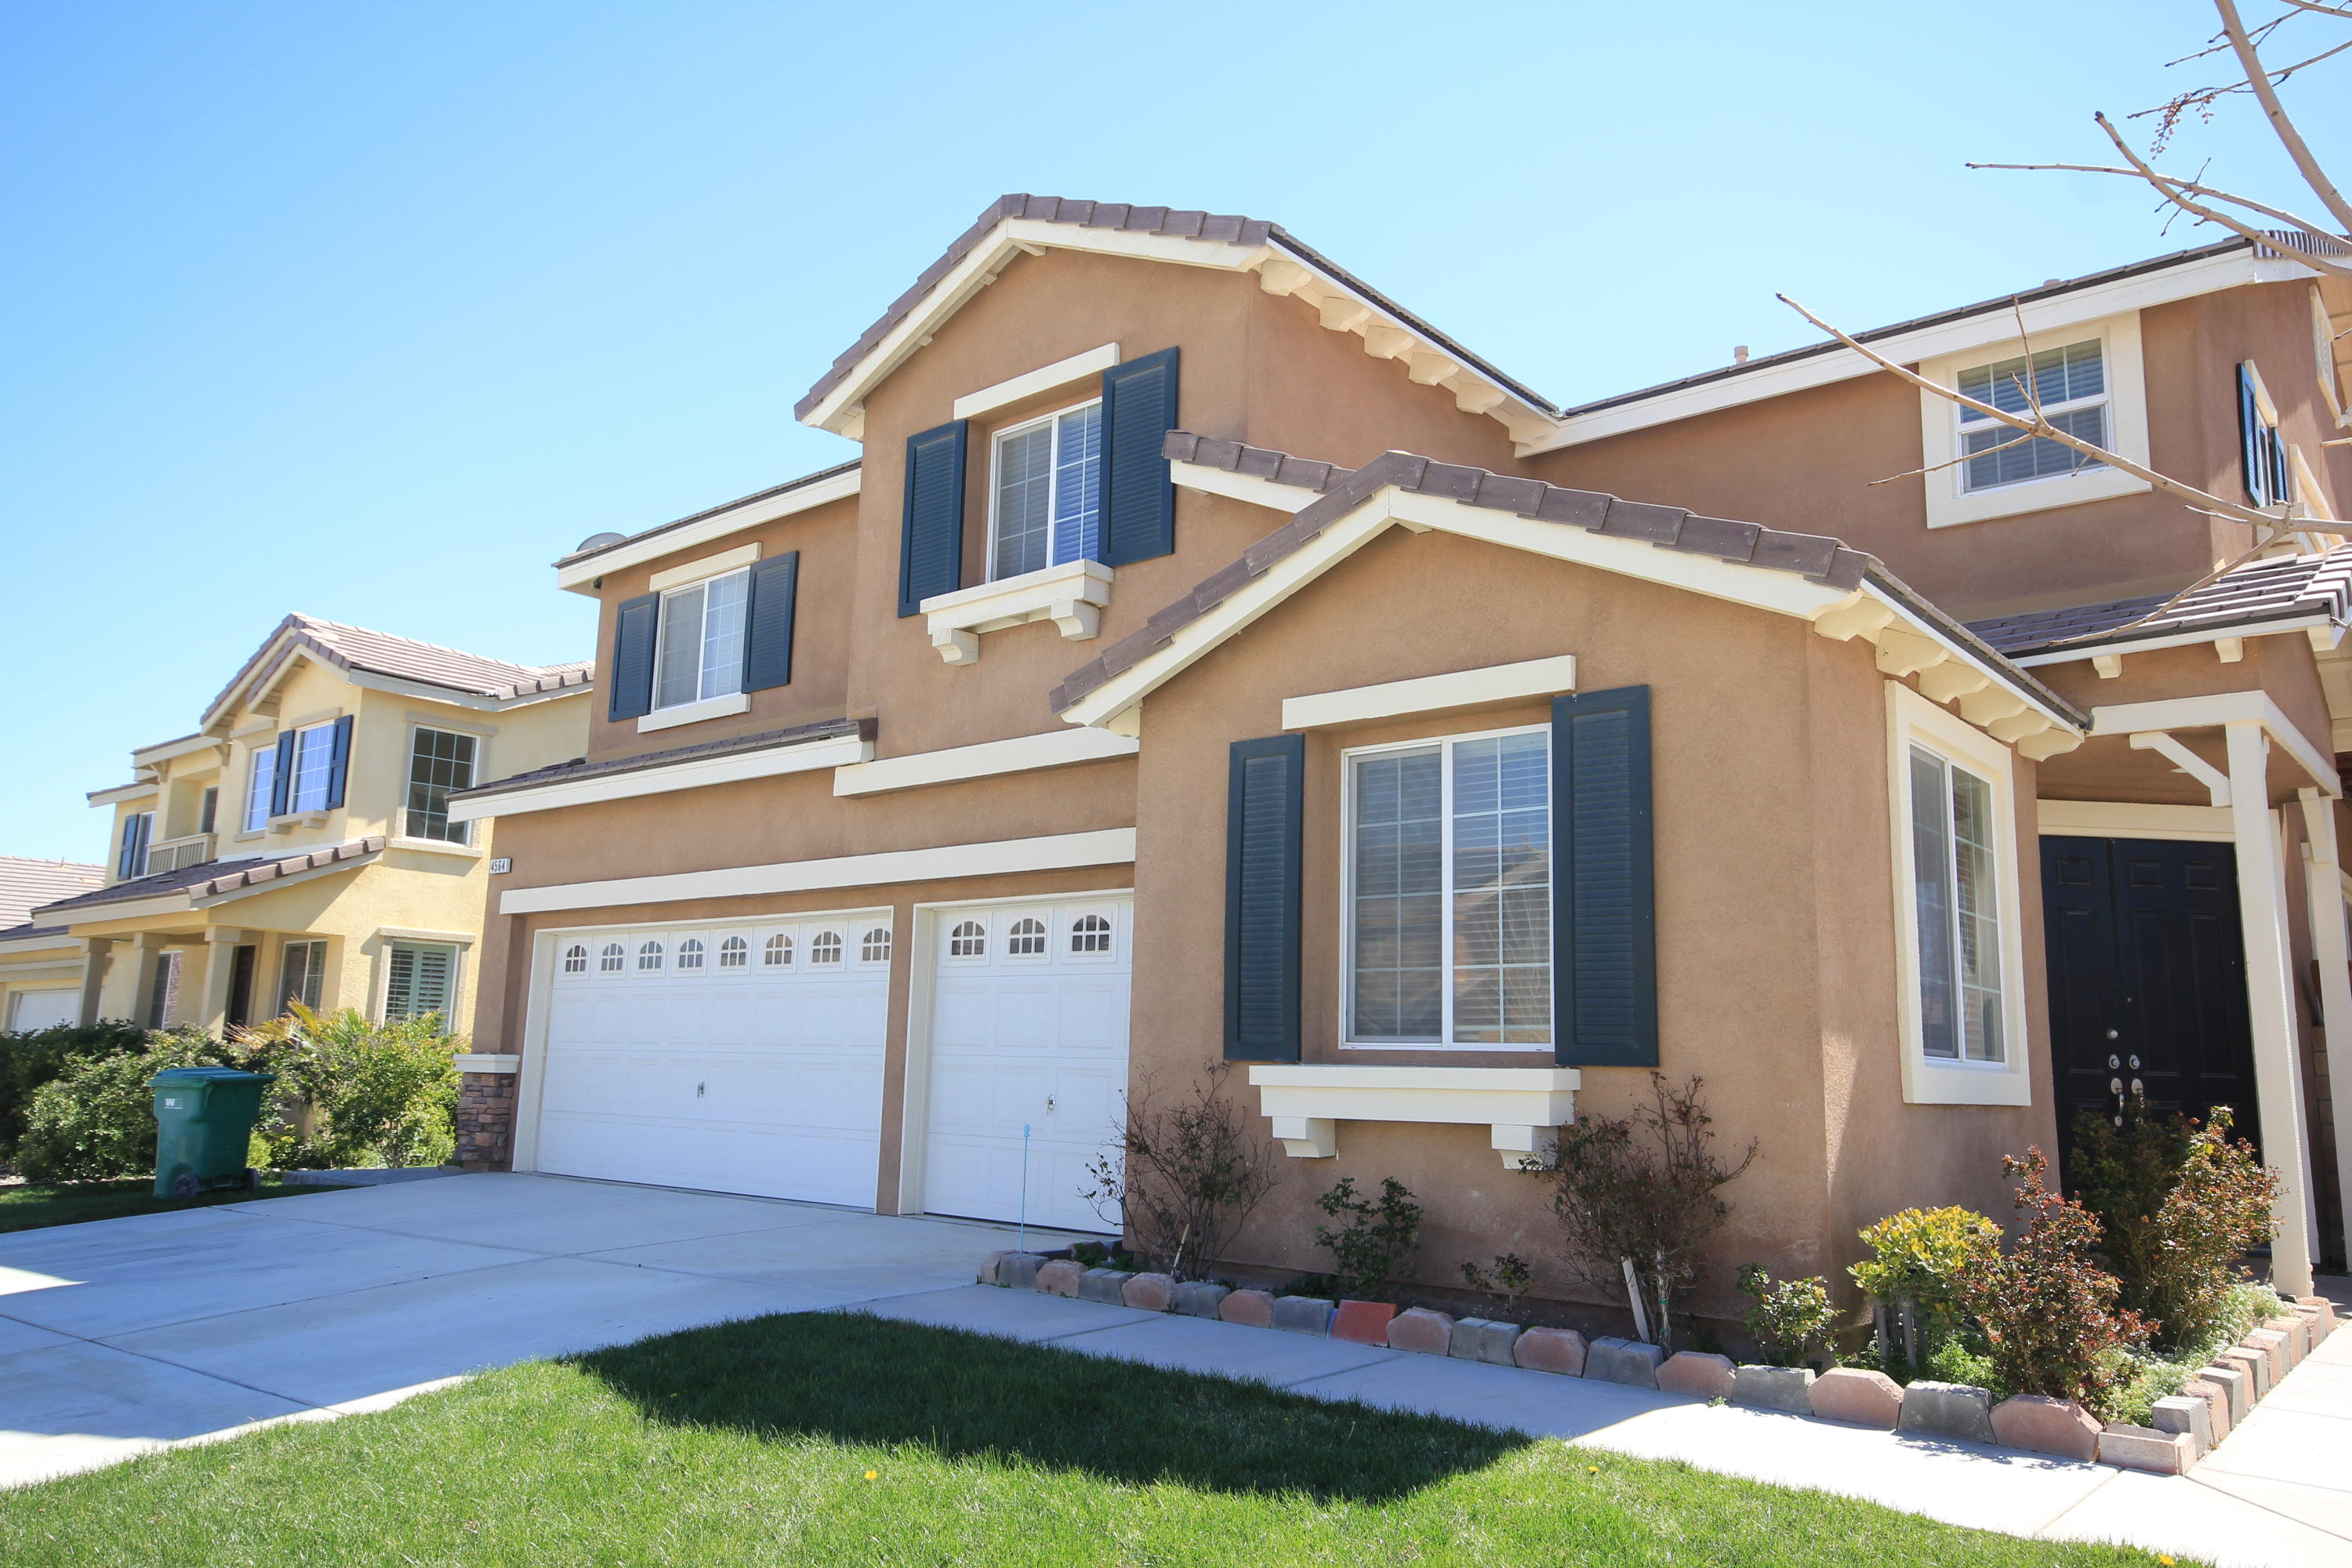 20 best apartments in palmdale ca with pictures p 3 rh apartmentlist com